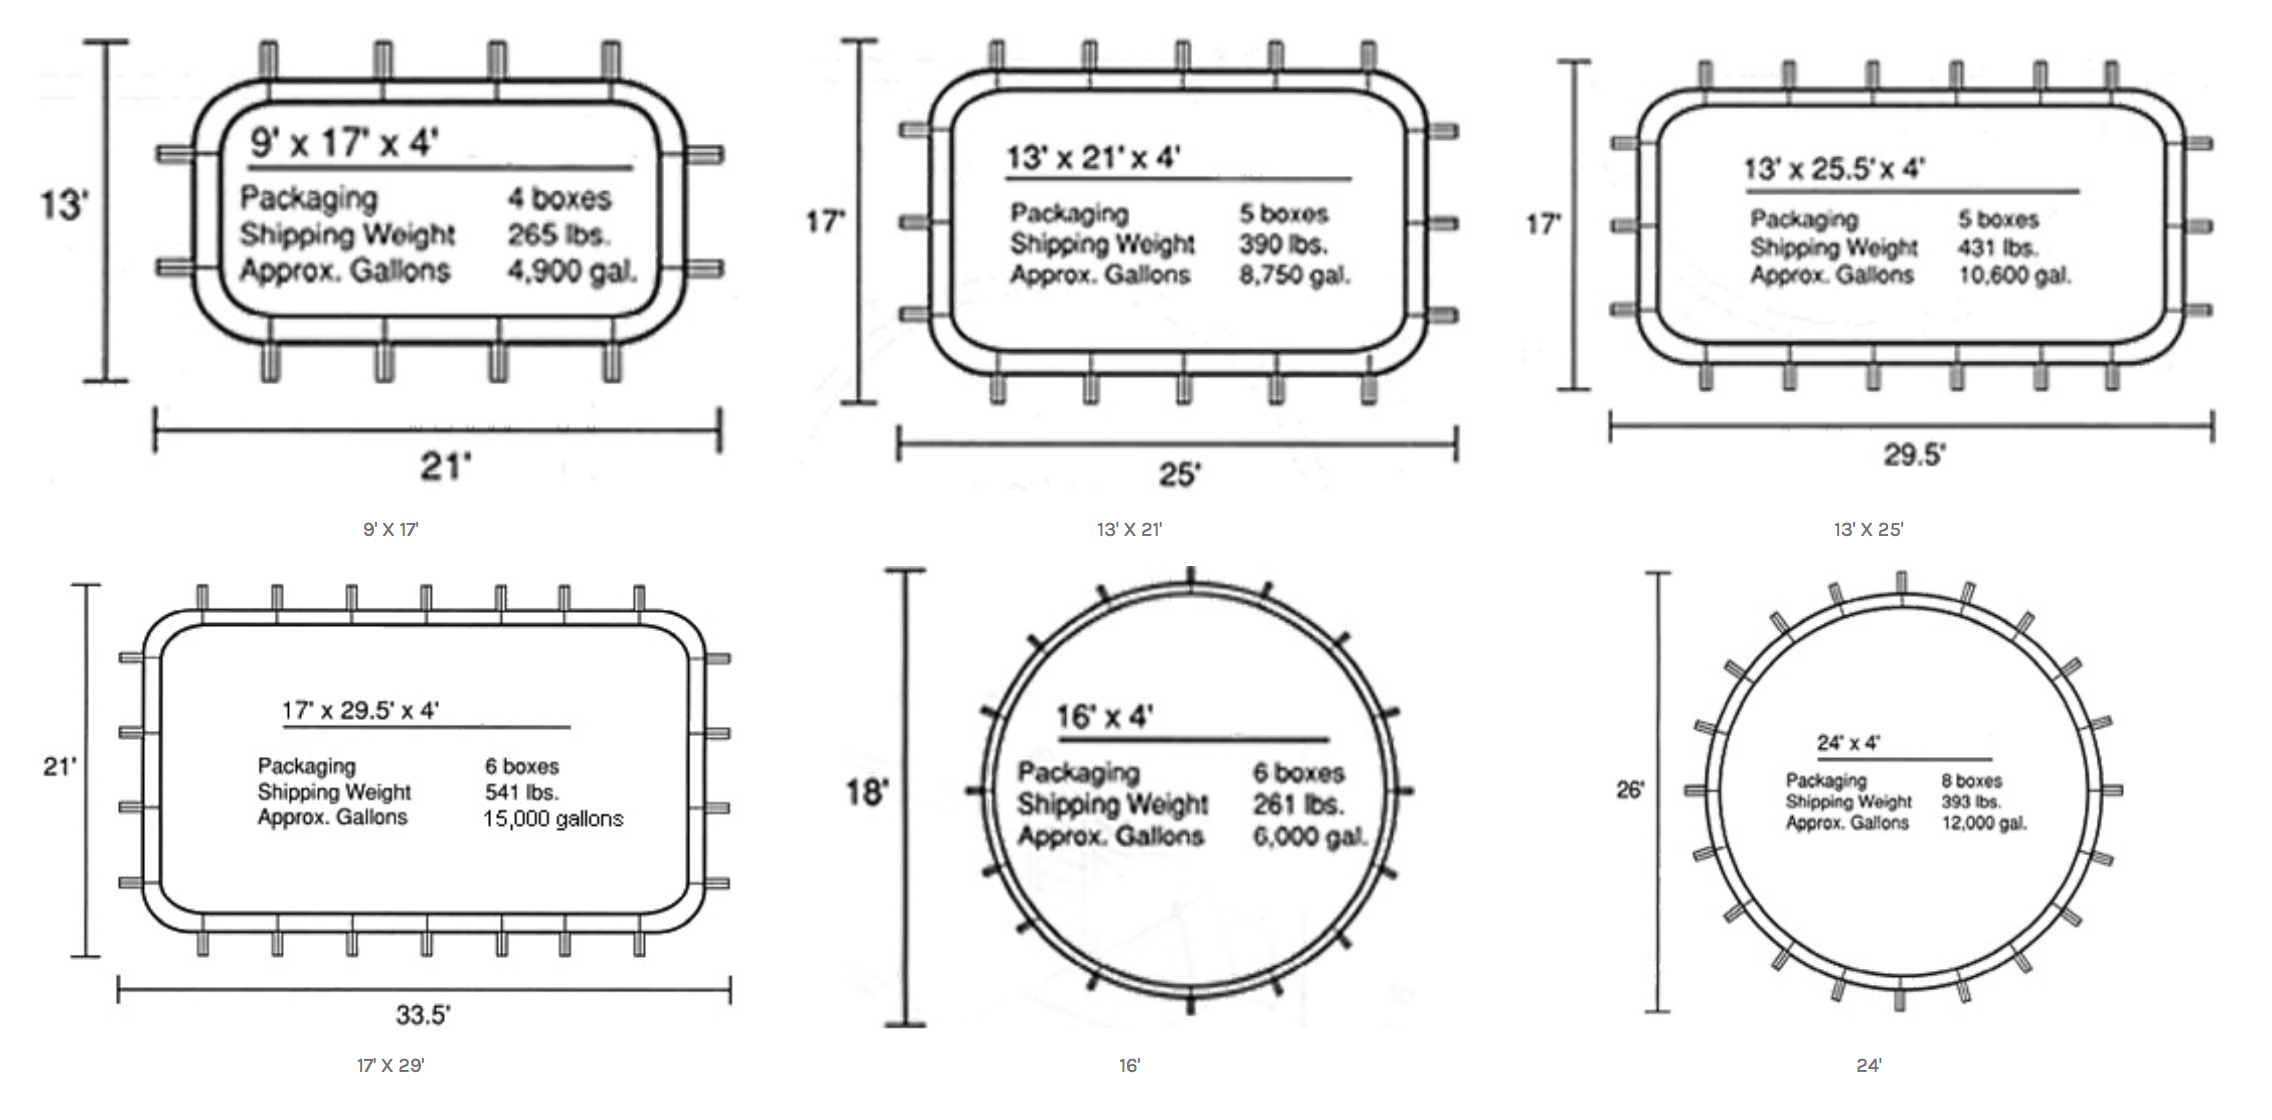 Graphics of Available Standard Sizes of the Titan Pool 3